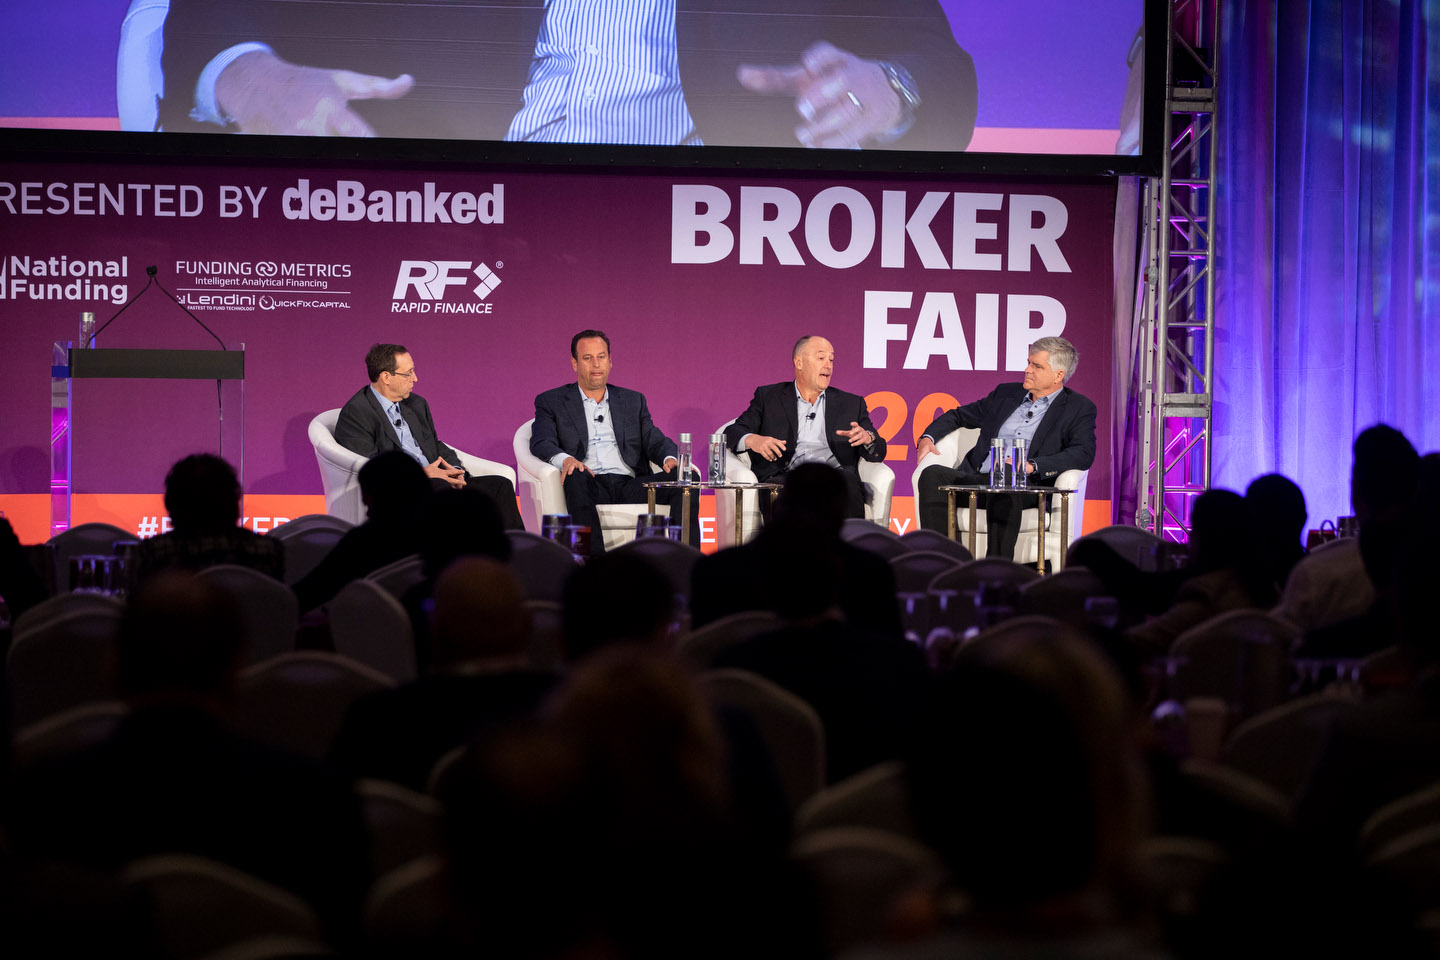 Broker Fair 2019 - Presented by deBanked - 404